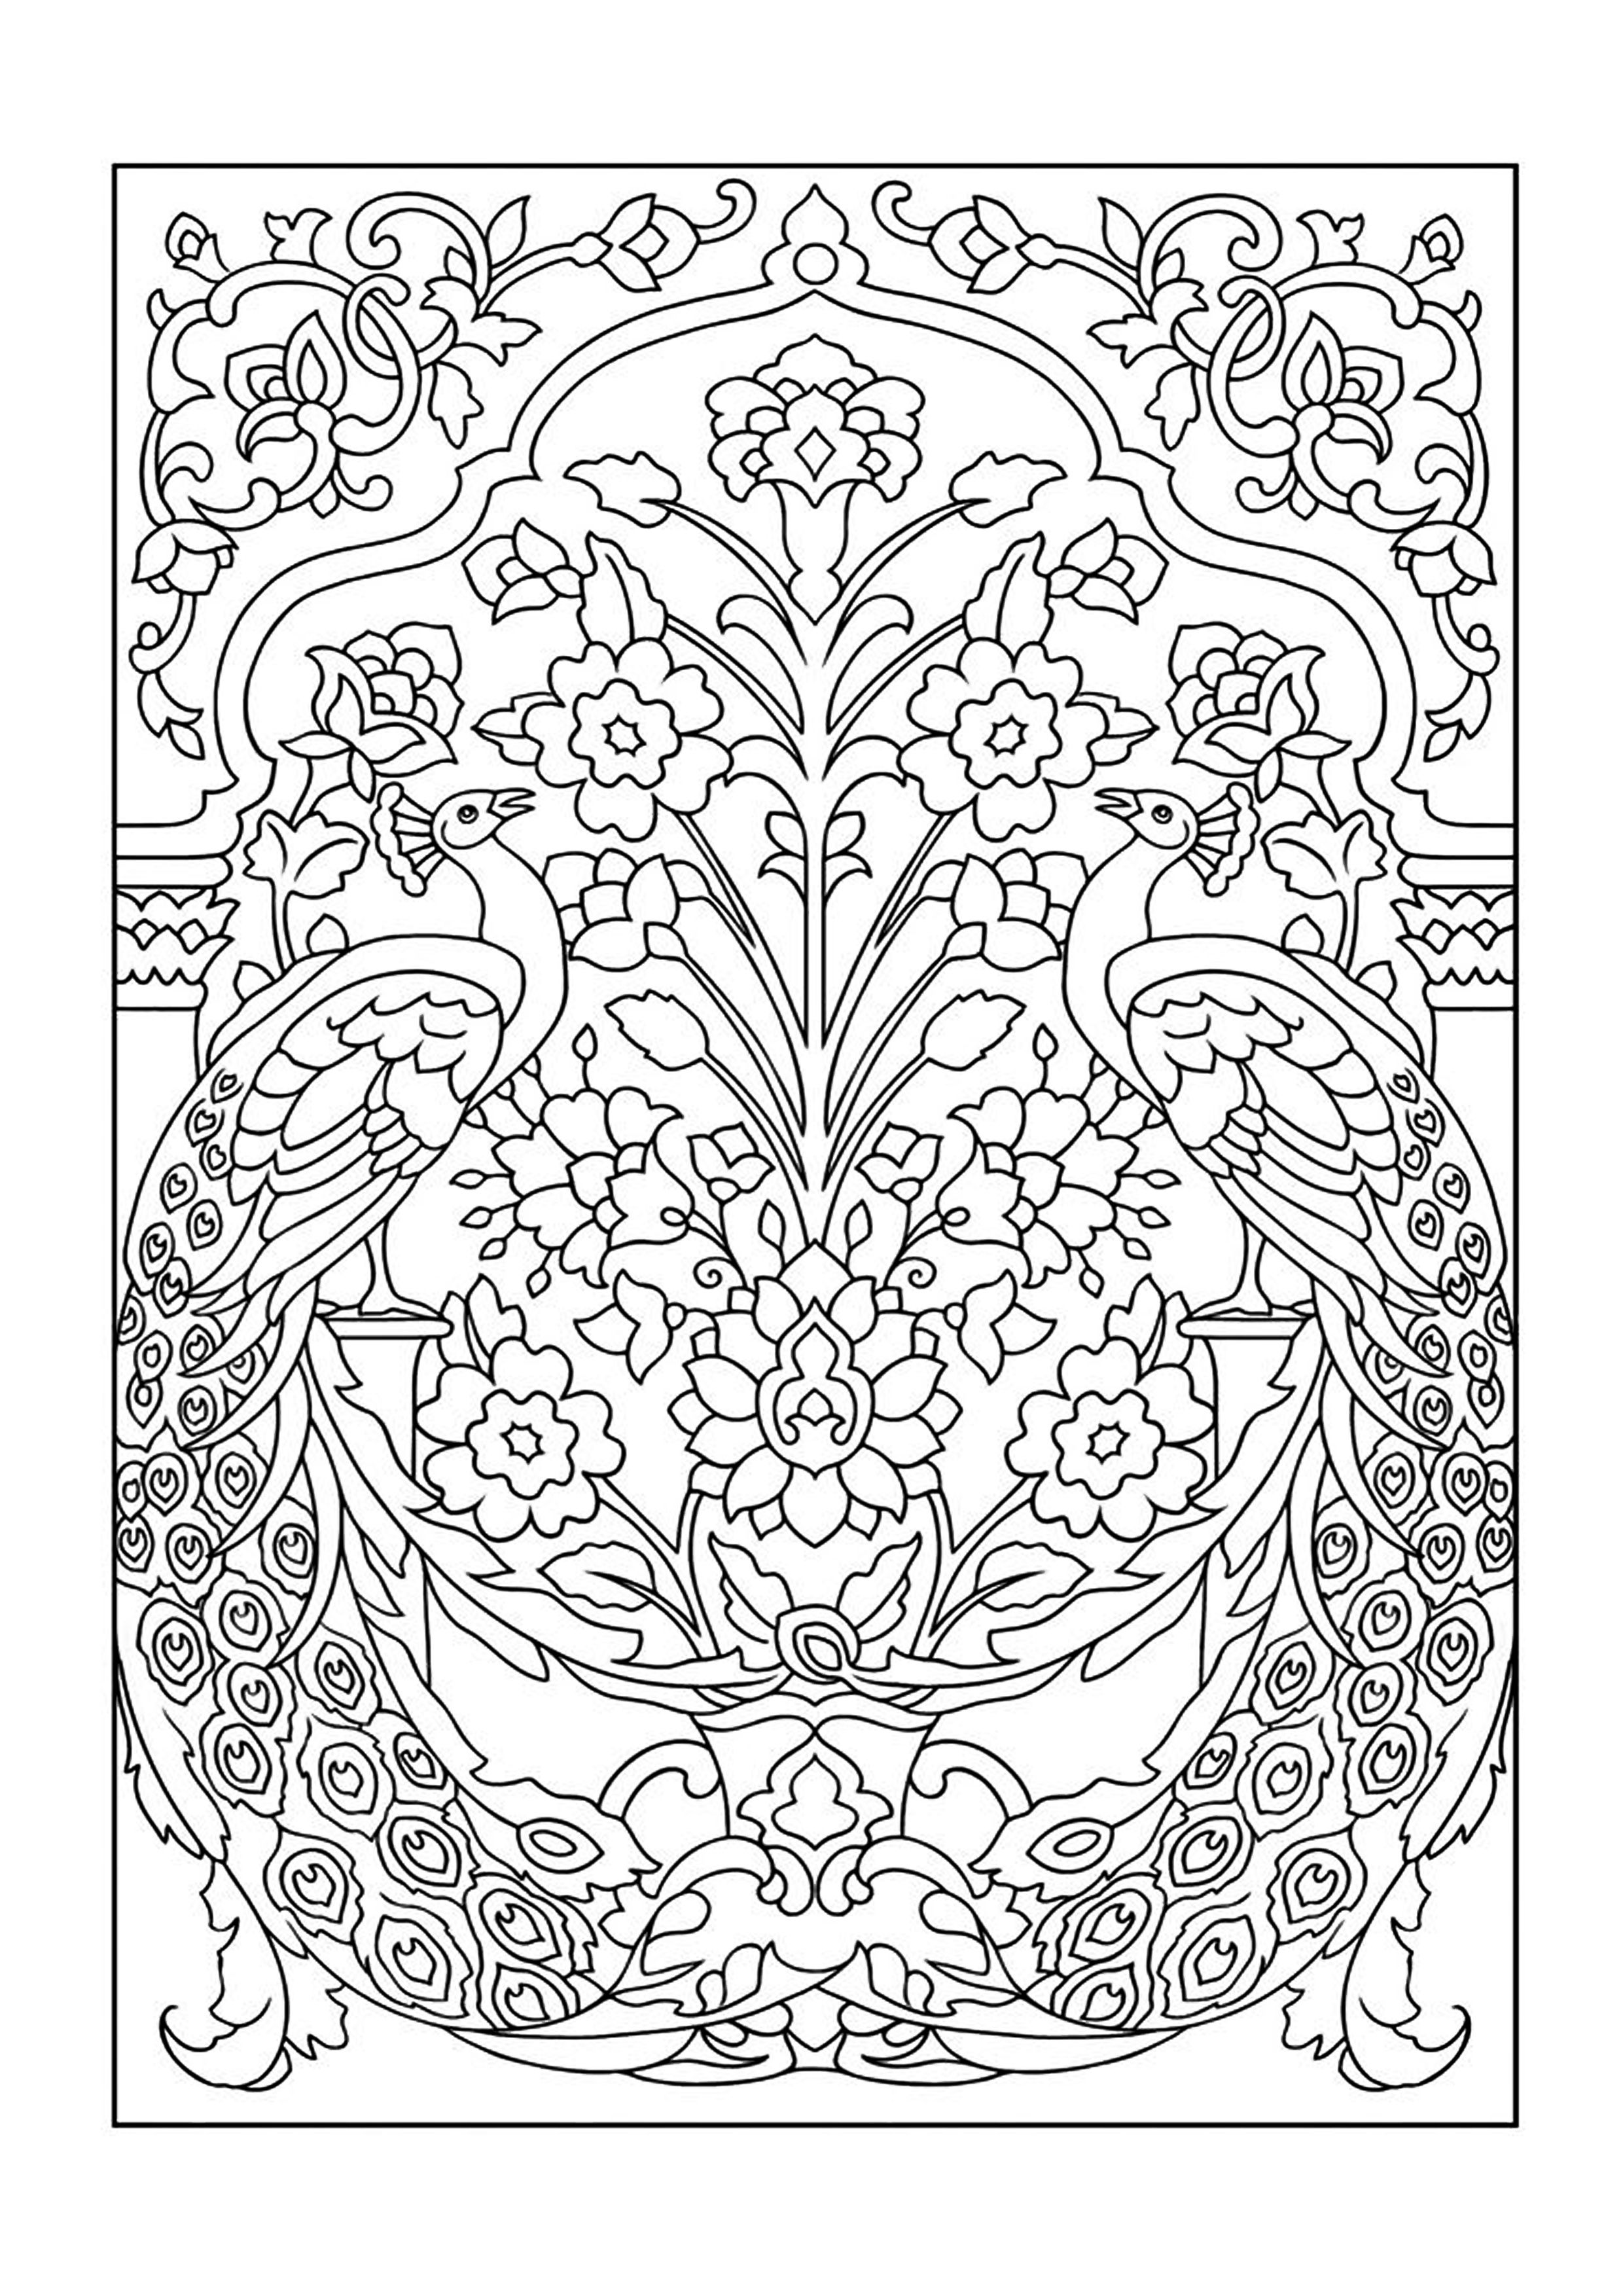 Colouring Books - FREE printable A4 size - Pavo Real // Imagenes ...